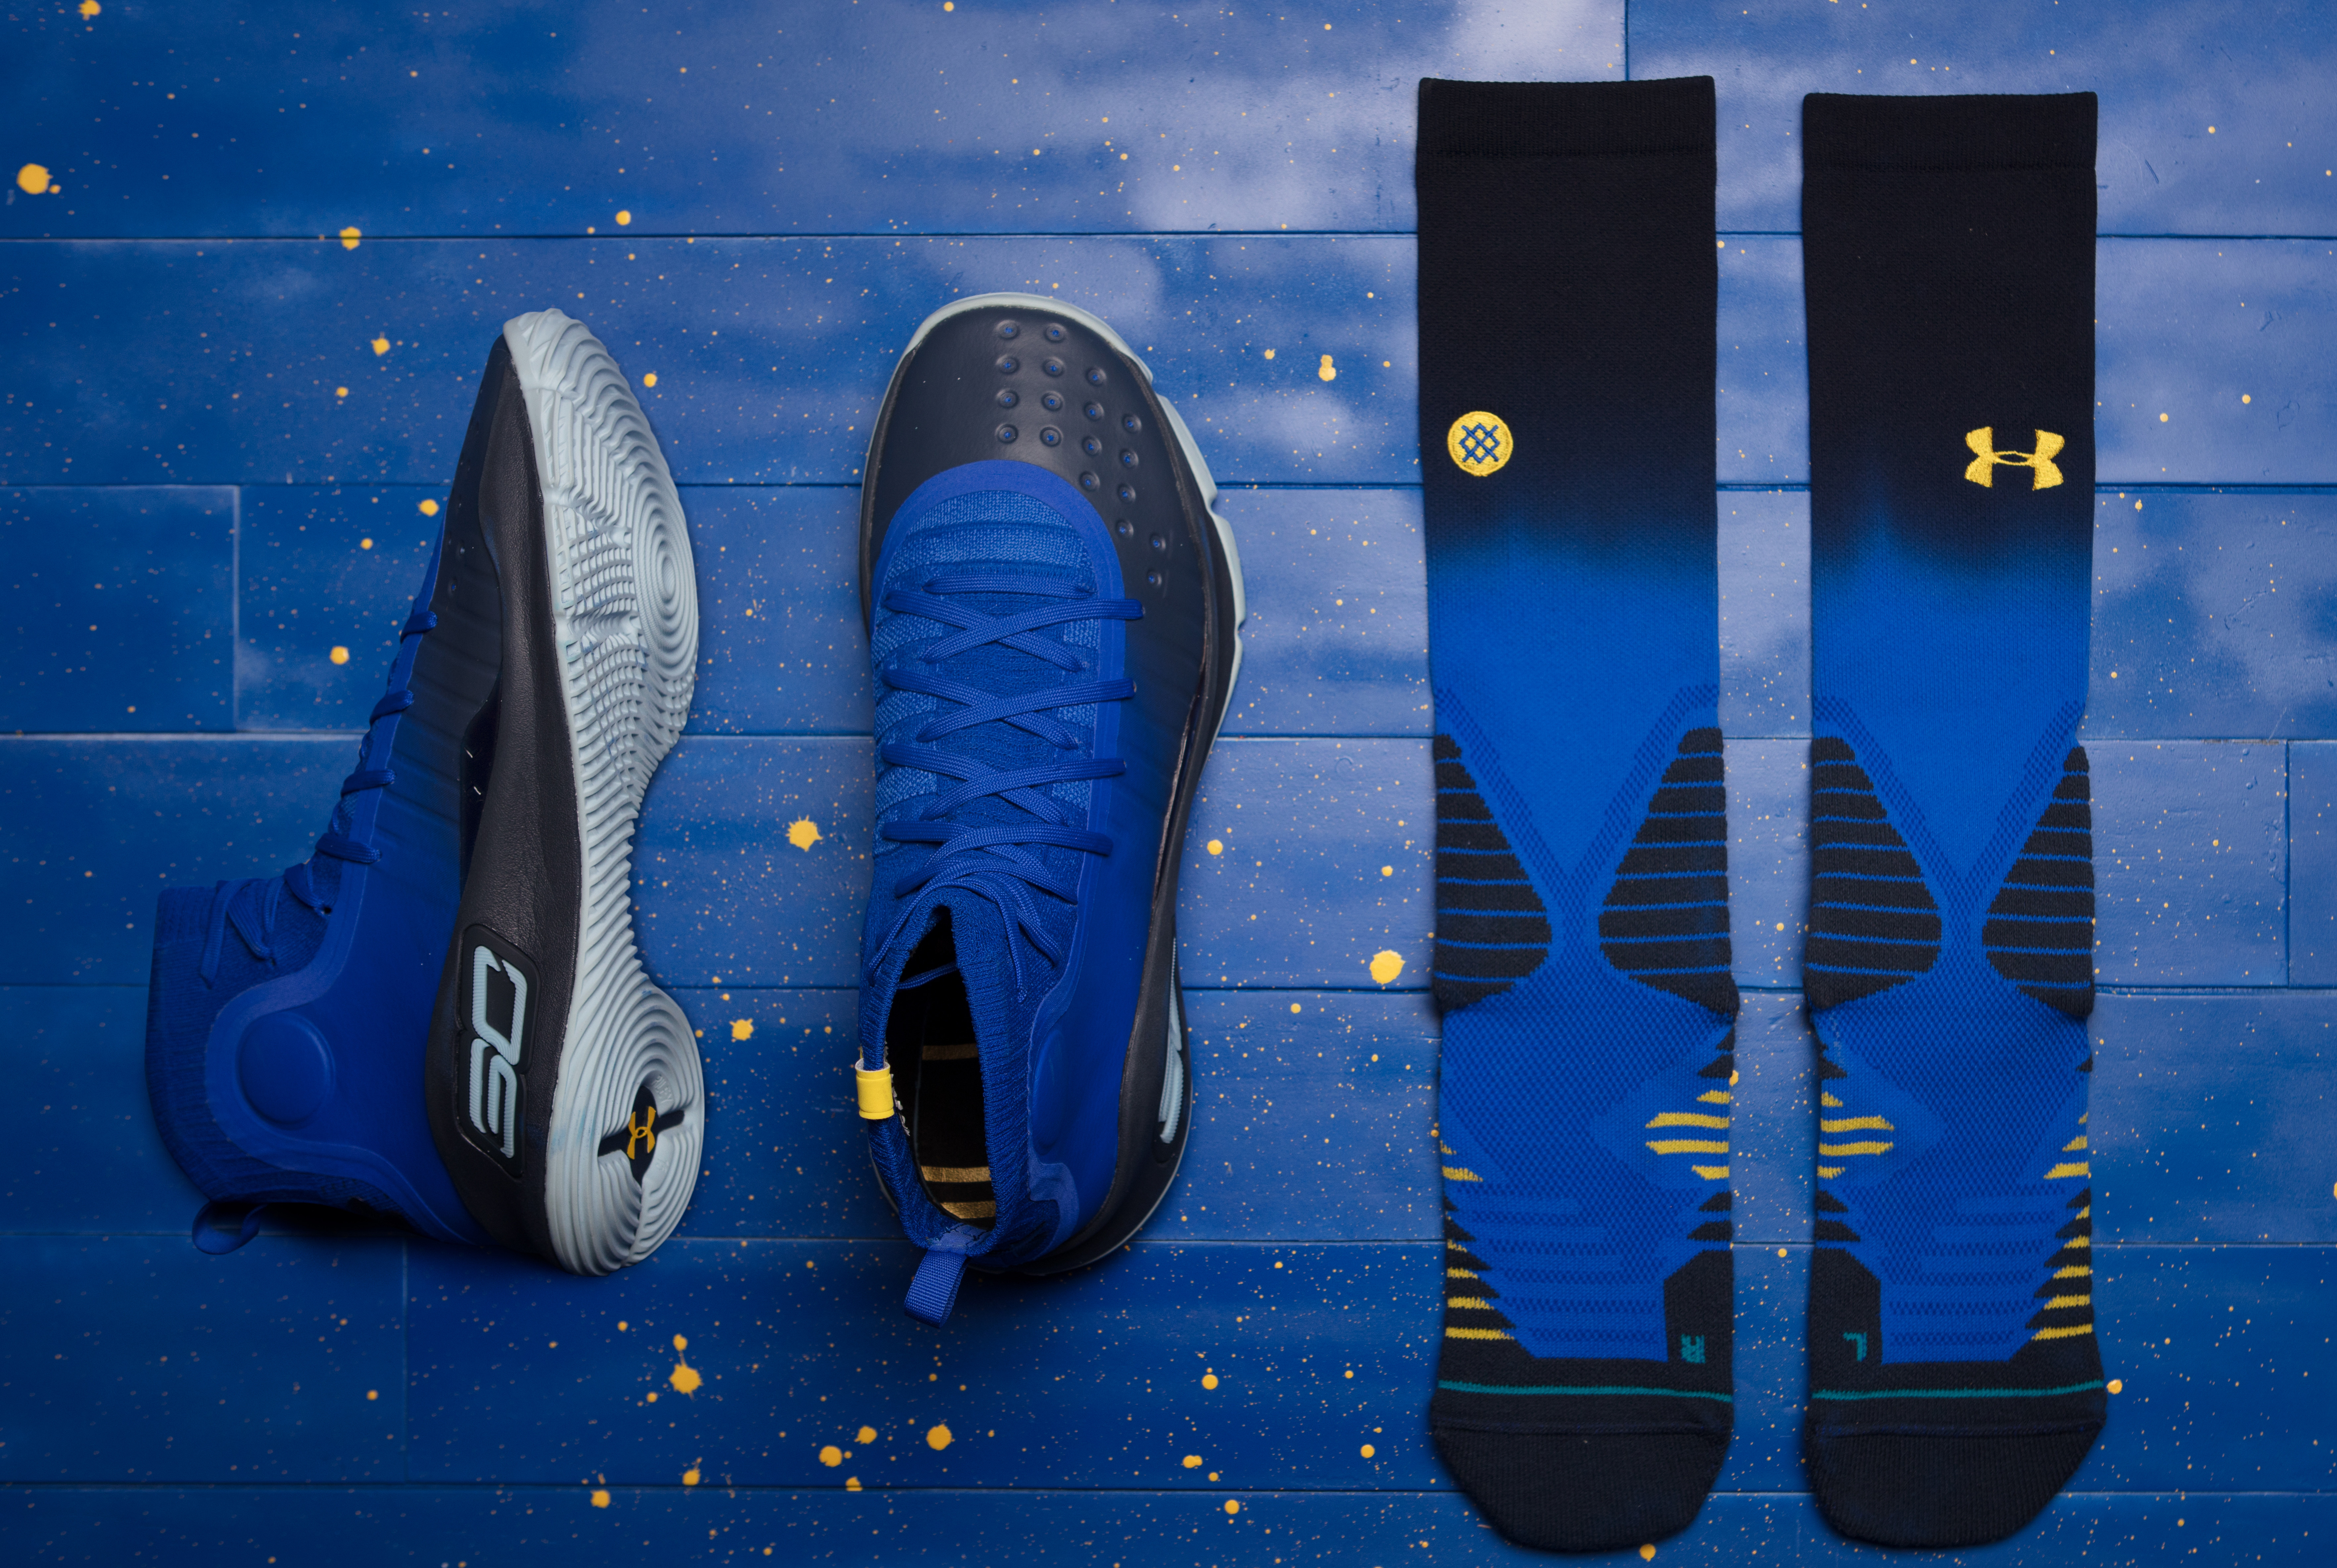 94860cc90d37 Under Armour Curry 4  More Fun  1298306-401 x Stance 1326667-400 Capsule  Collaboration